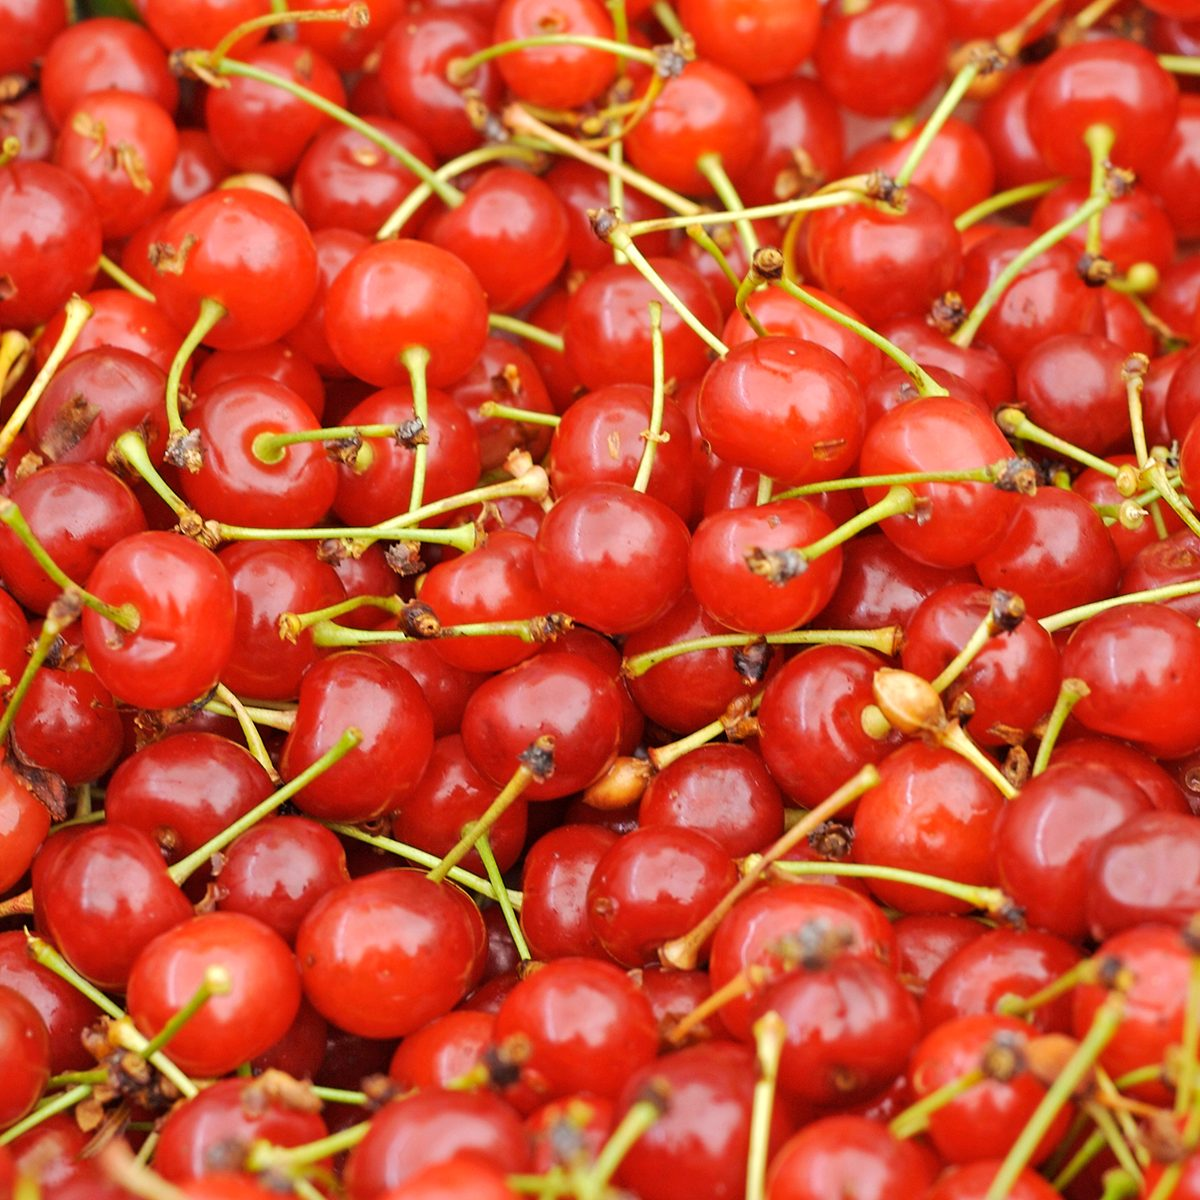 Montmorency Cherries at the Market